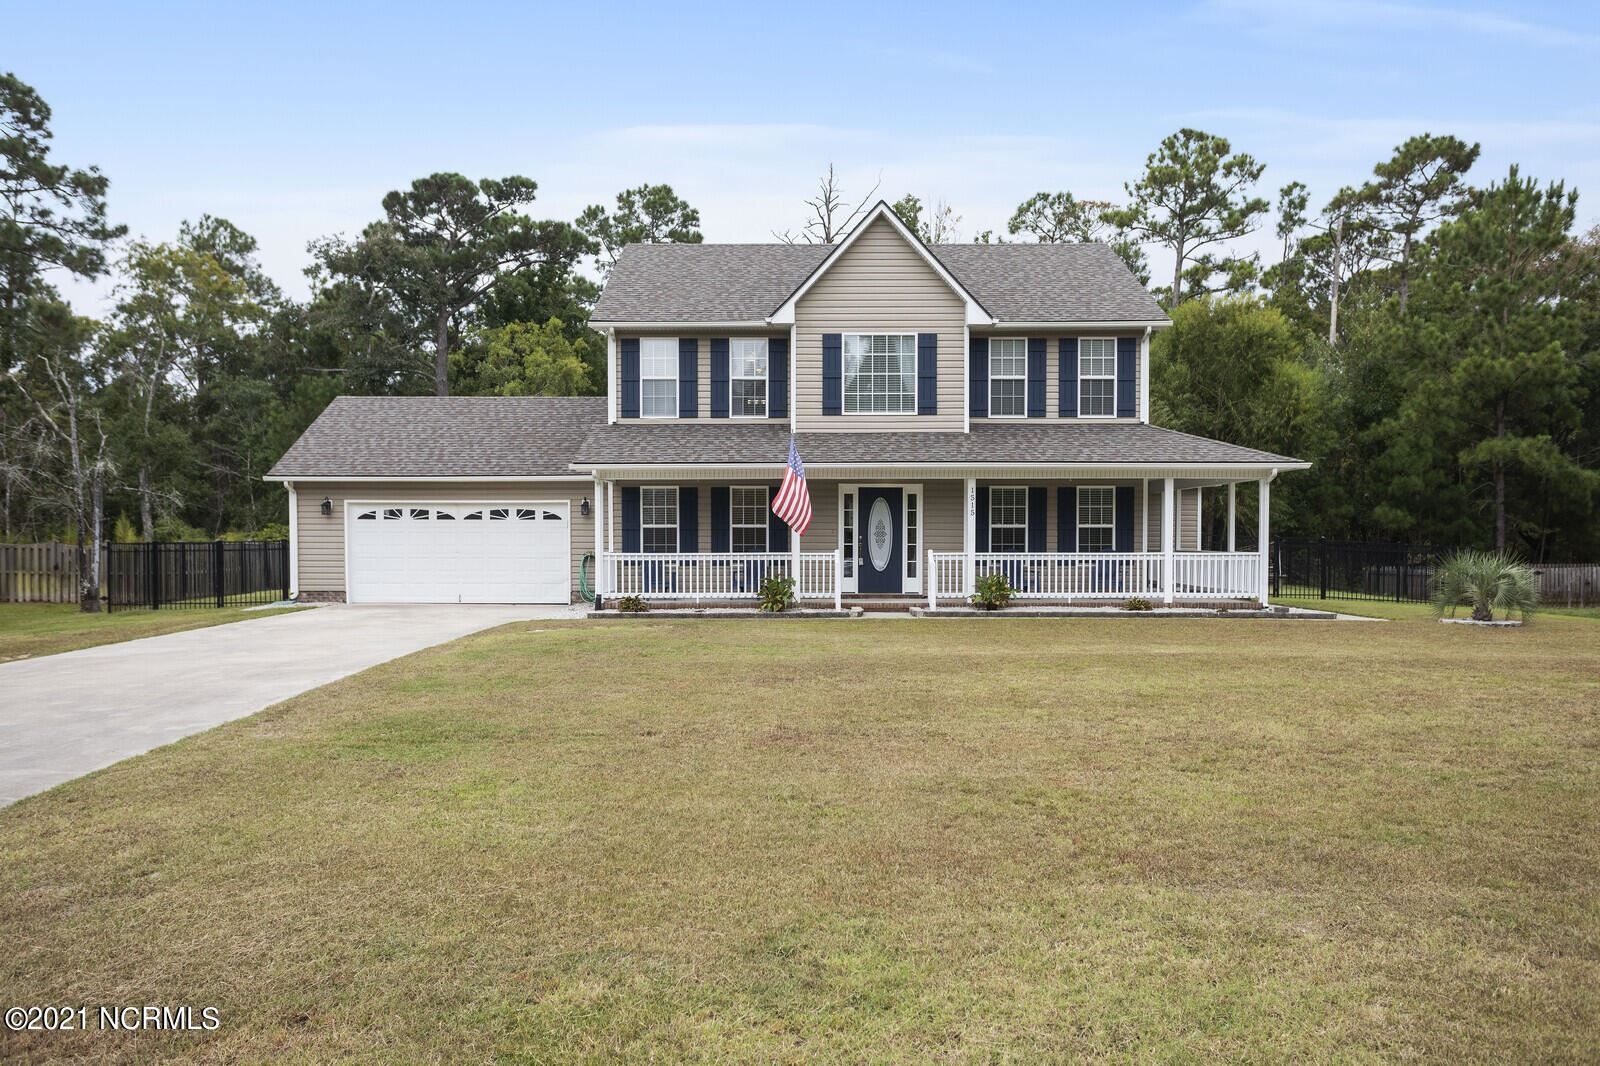 Photo of 1515 Chadwick Shores Drive, Sneads Ferry, NC 28460 (MLS # 100290657)